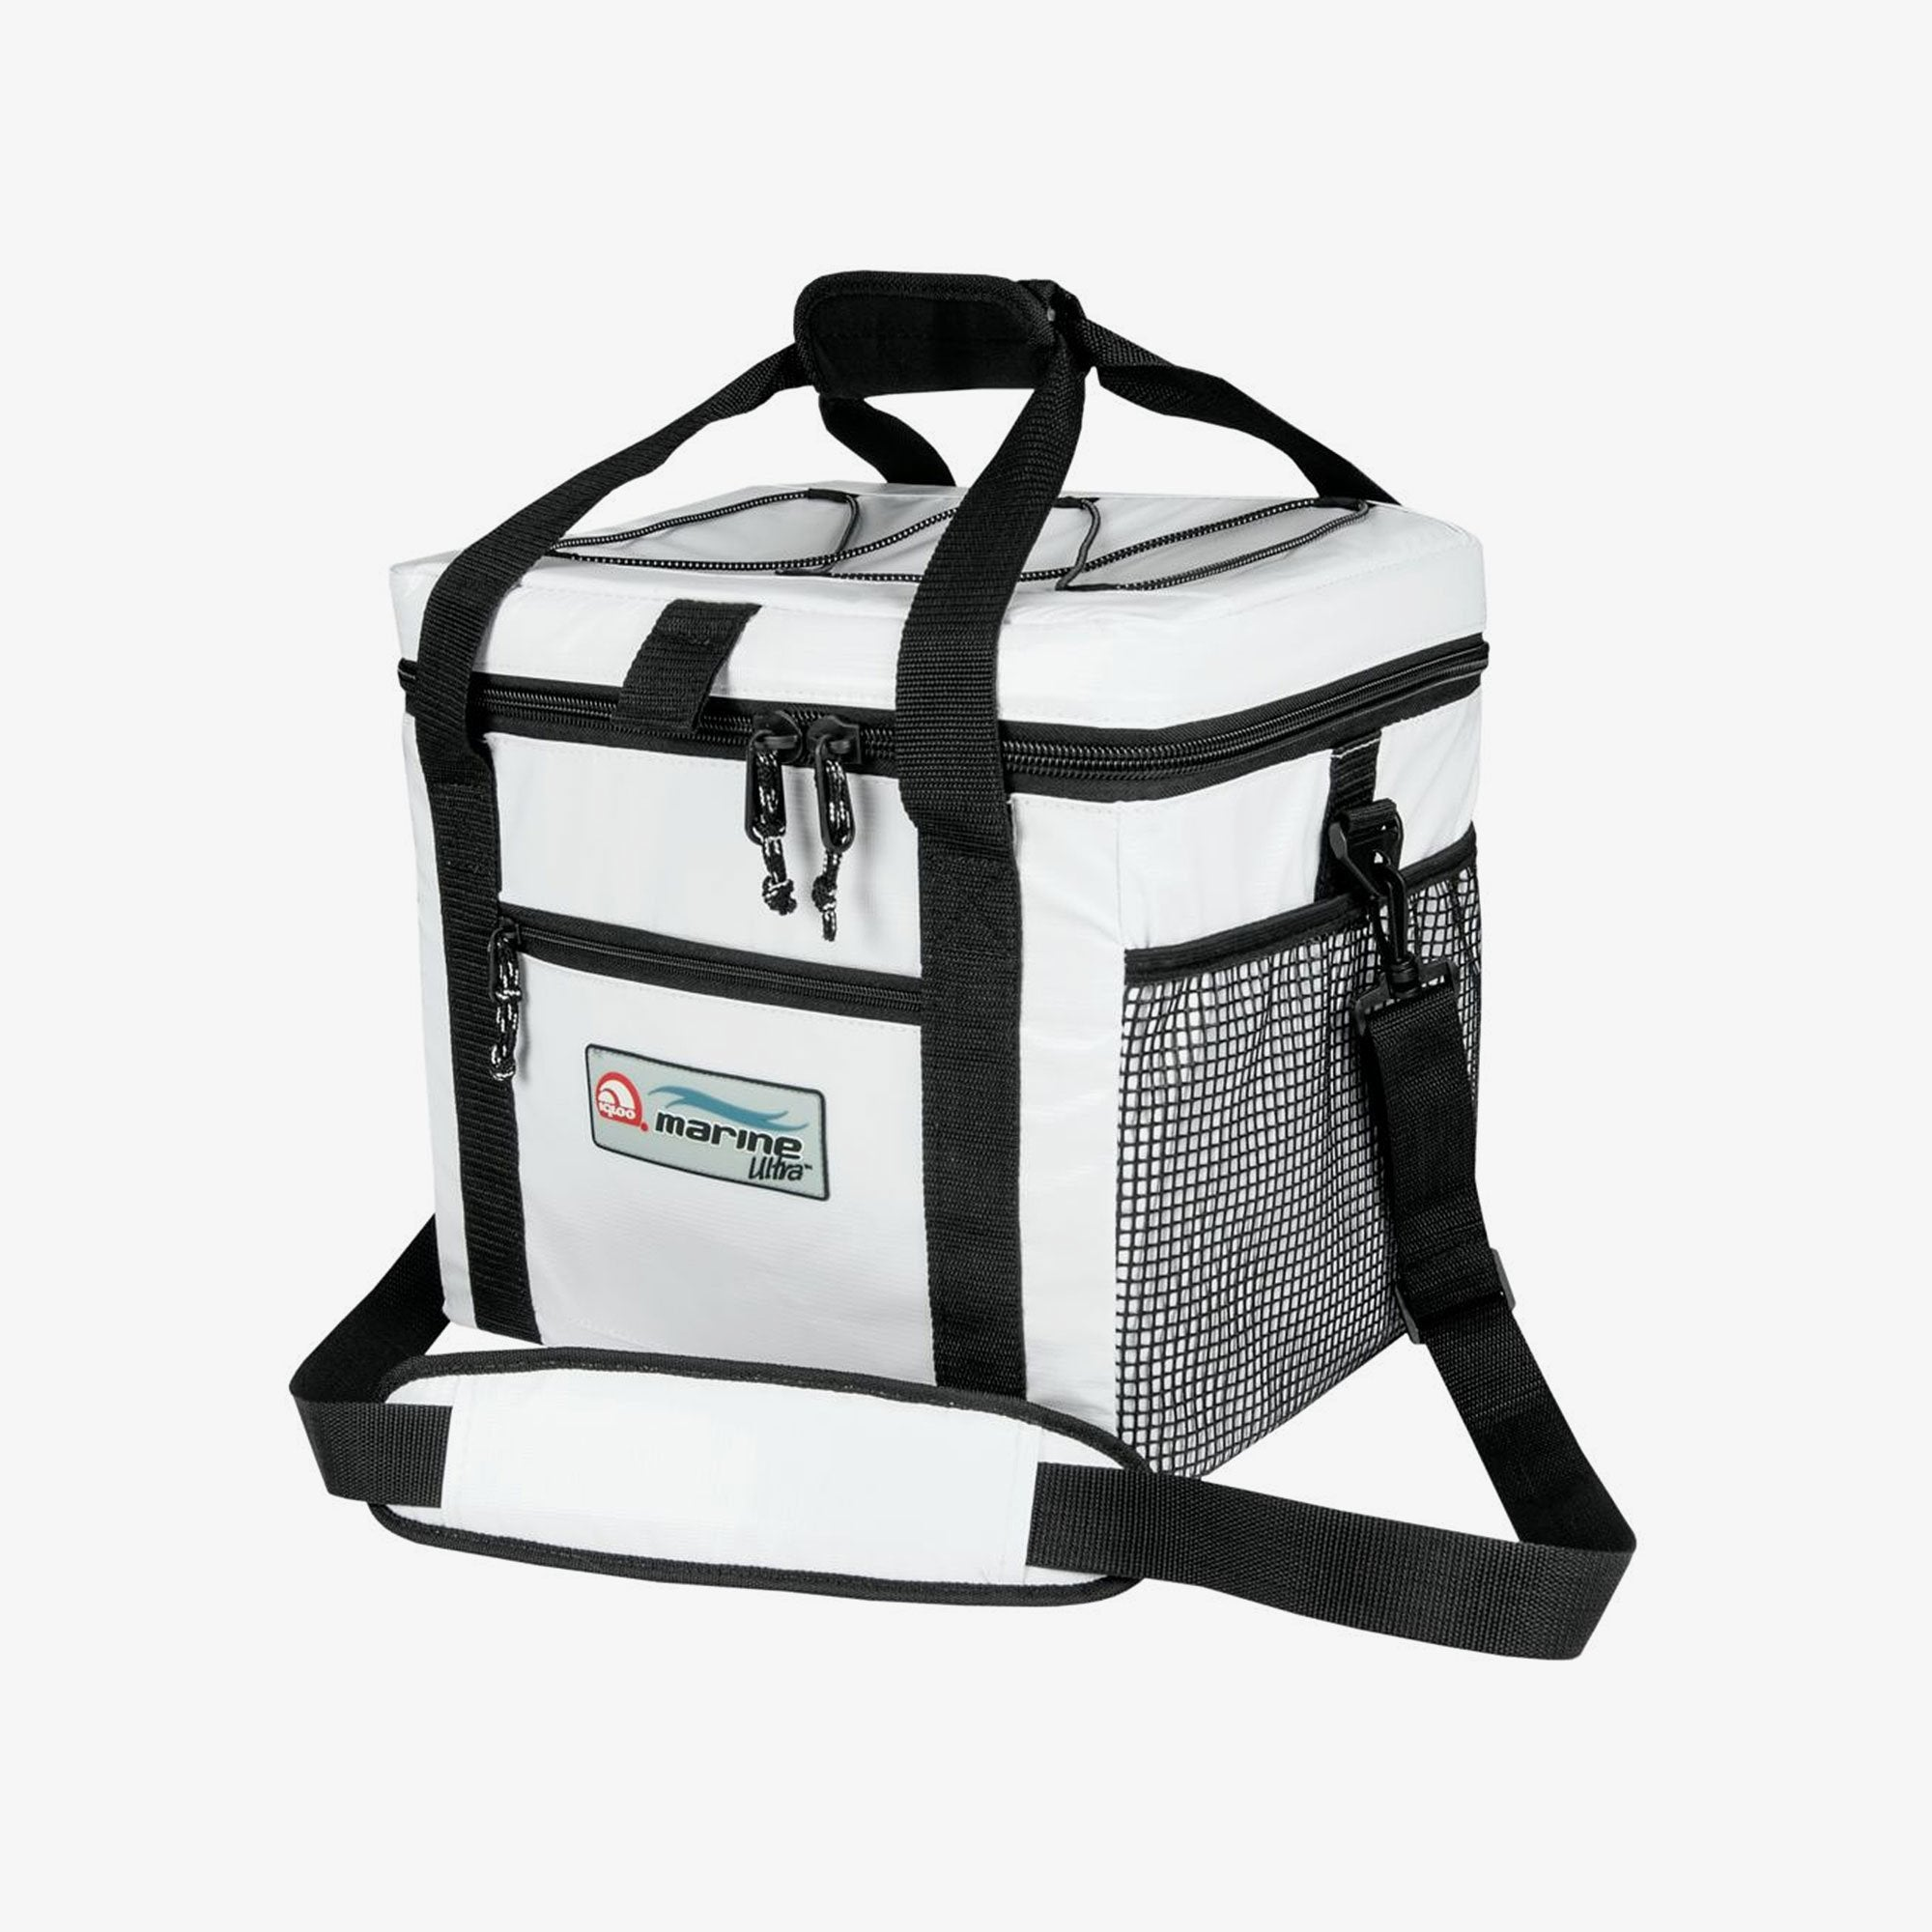 Igloo Cooler Bags | Marine Ultra 24-Can Square Cooler Bag in White, Black